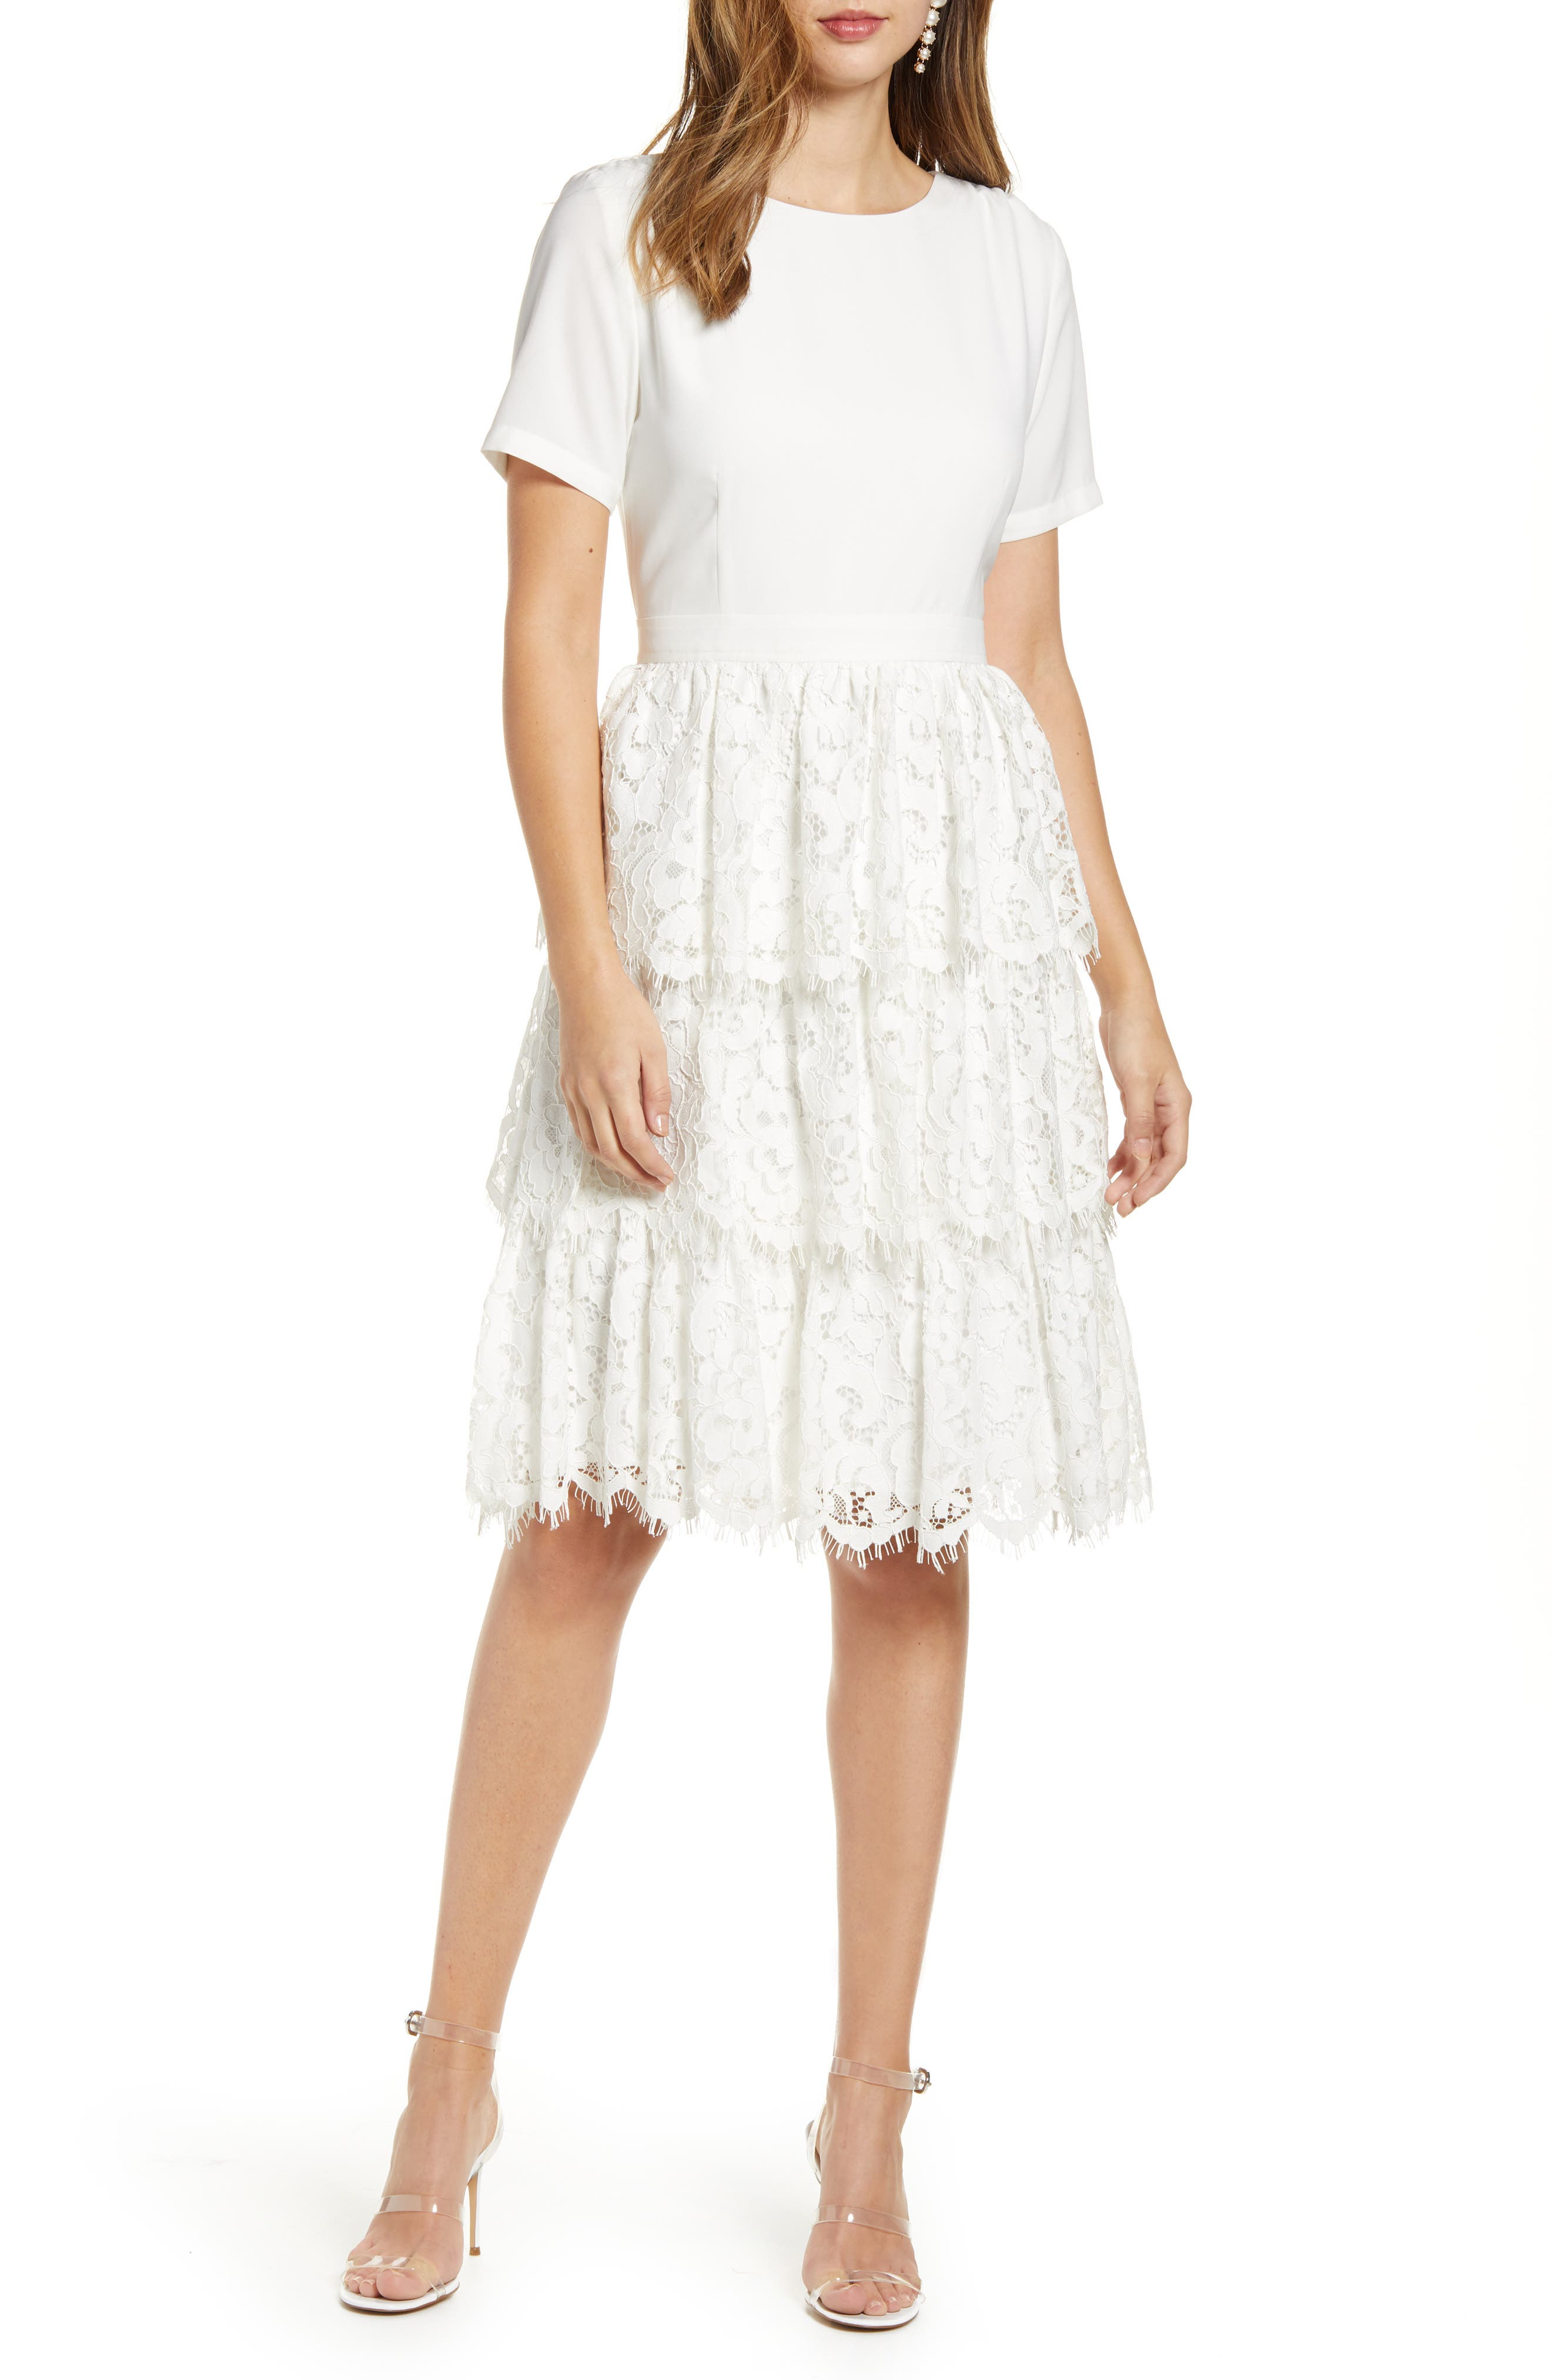 1920s Day Dresses, Tea Dresses, Mature Dresses with Sleeves Womens Rachel Parcell Mix Lace Dress Size - Nordstrom Exclusive $101.40 AT vintagedancer.com